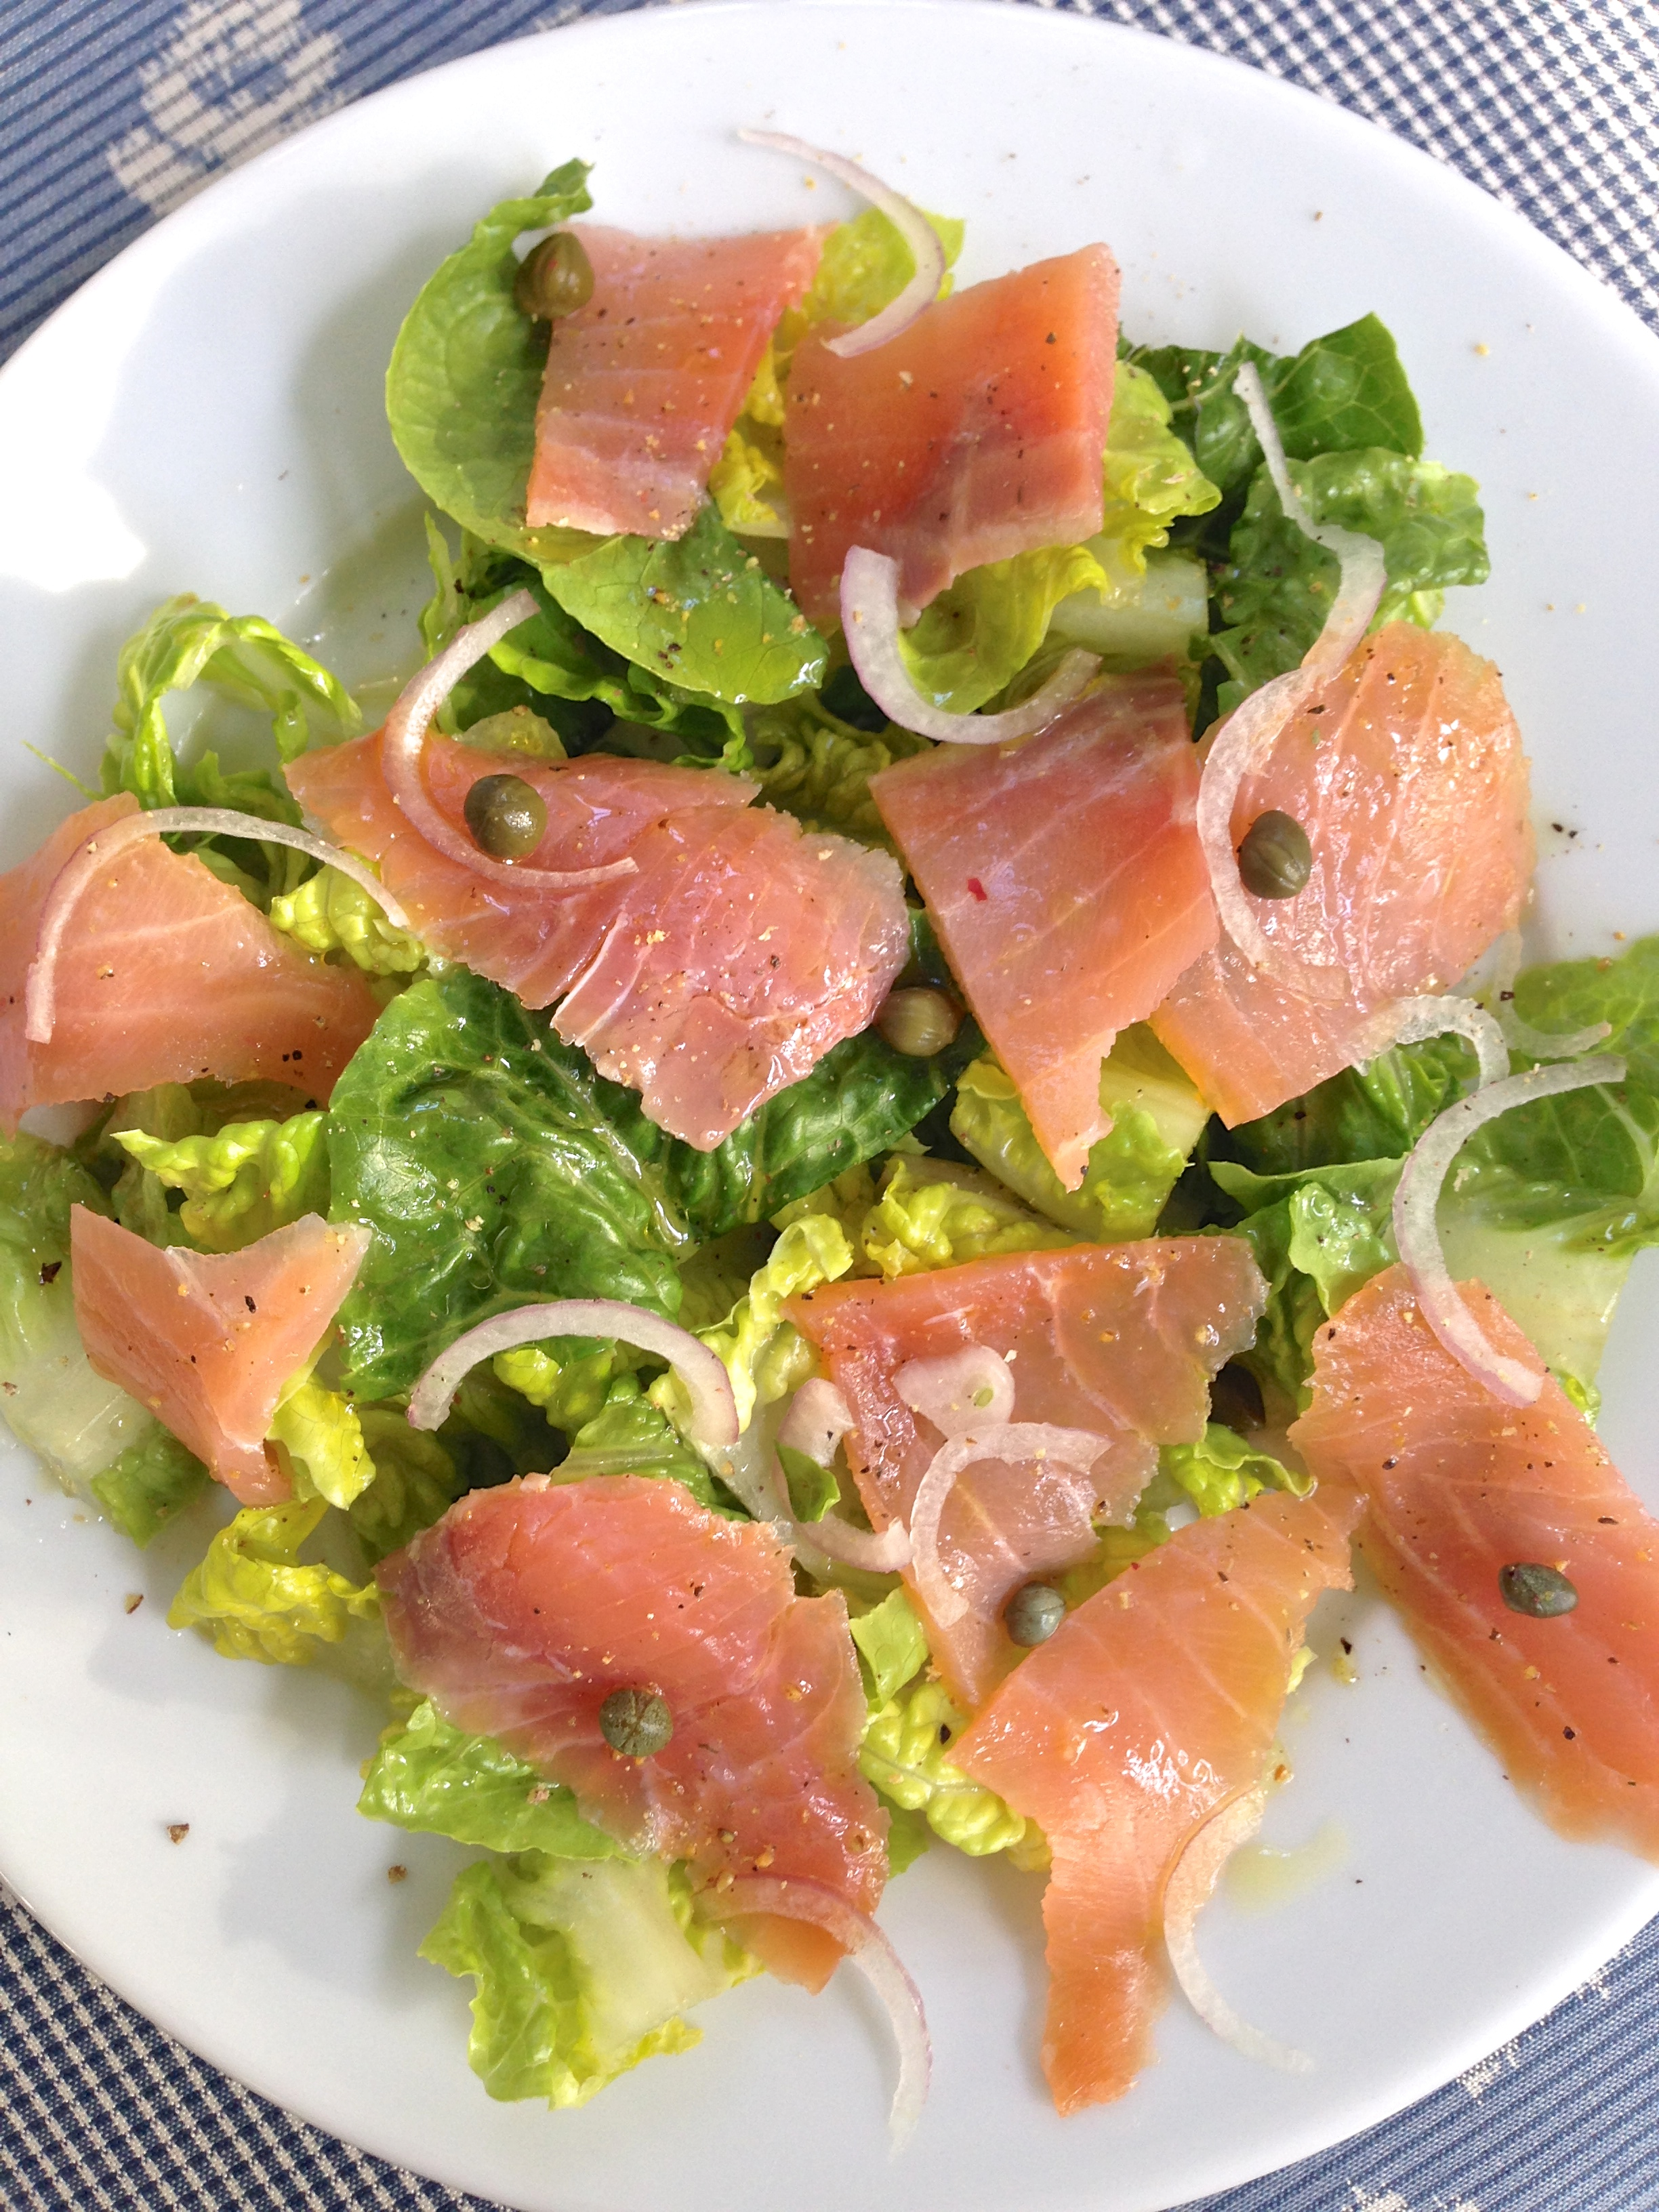 Romaine Salad with Smoked Salmon - Laughter and Lemonade